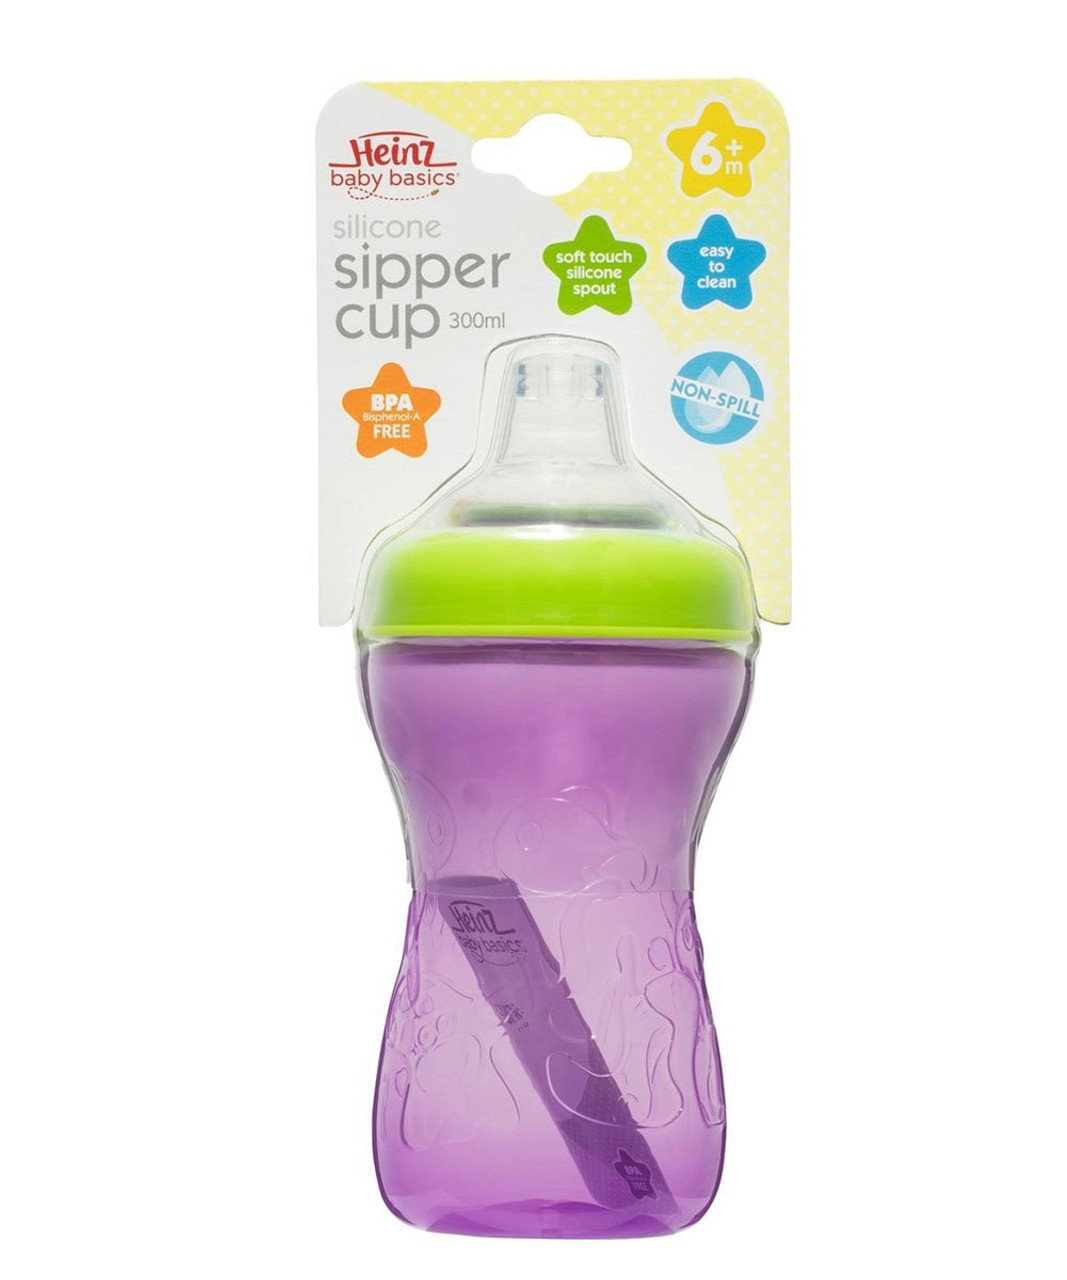 Heinz Silicone Sipper Toddler Cup 300ml at Baby Barn Discounts Heinz 300ml silicone non-spill sipper cup has soft touch silicone spout and is easy to clean.